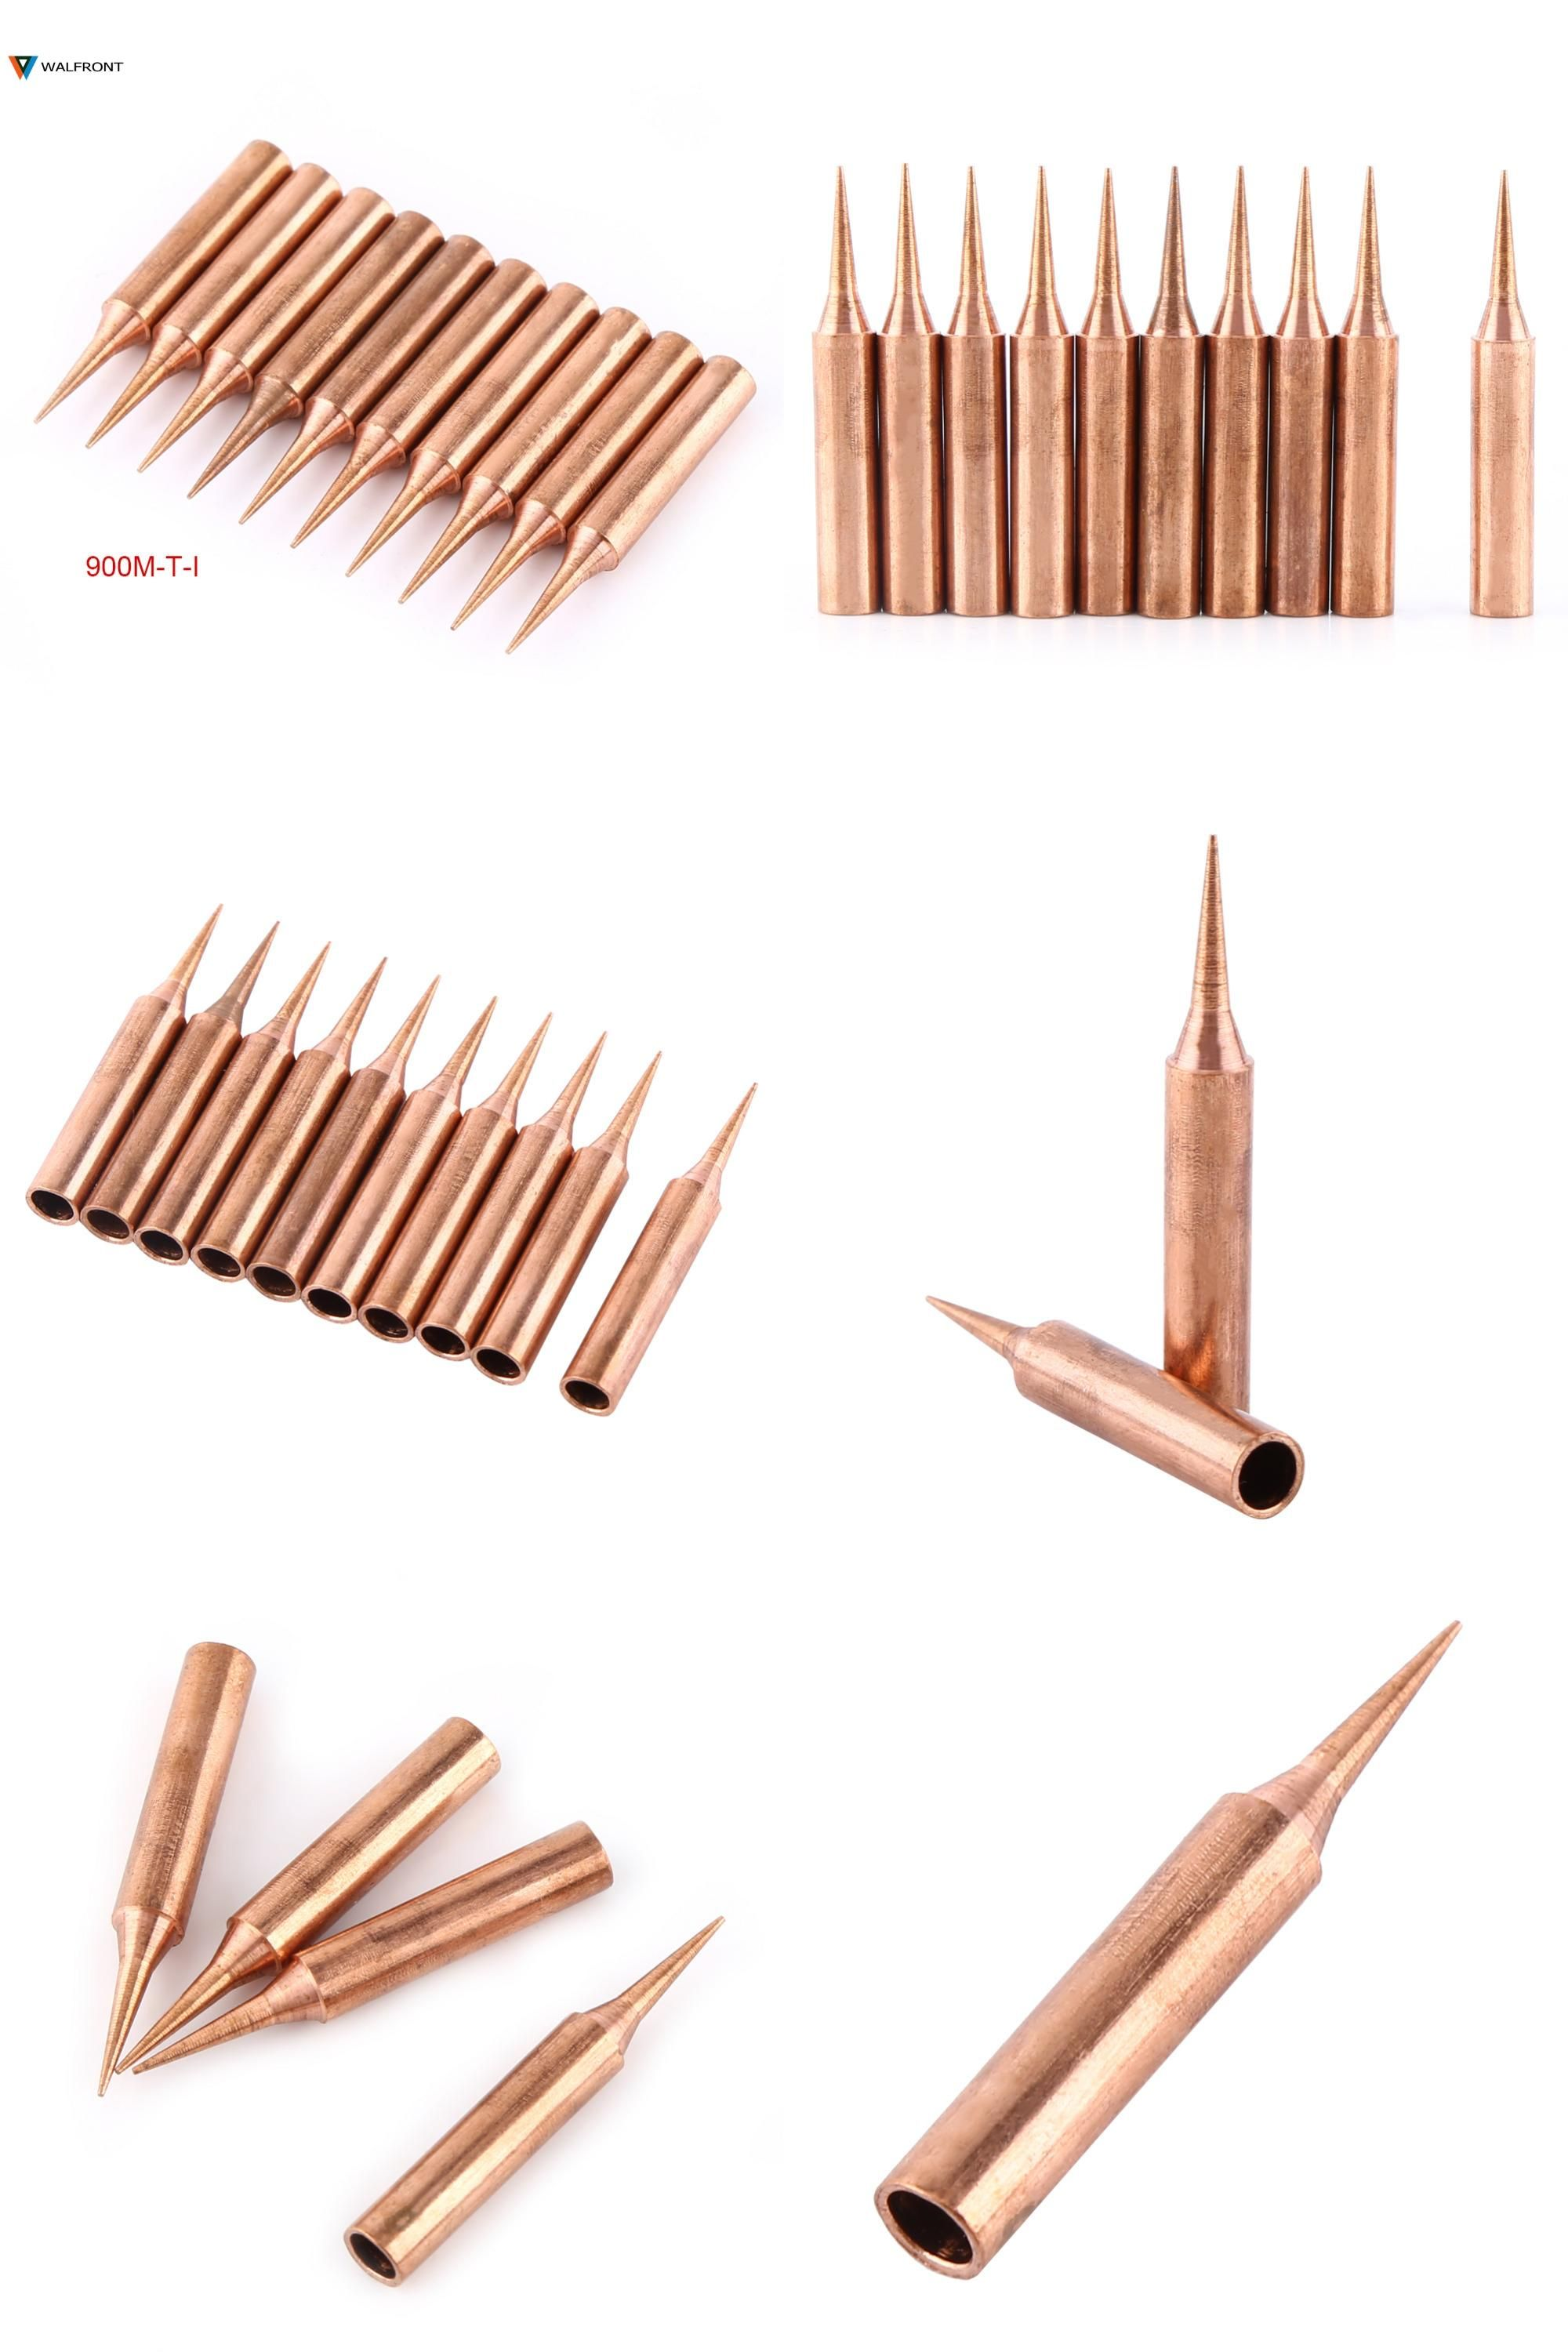 Visit to buy pcsset pure copper soldering iron tip low